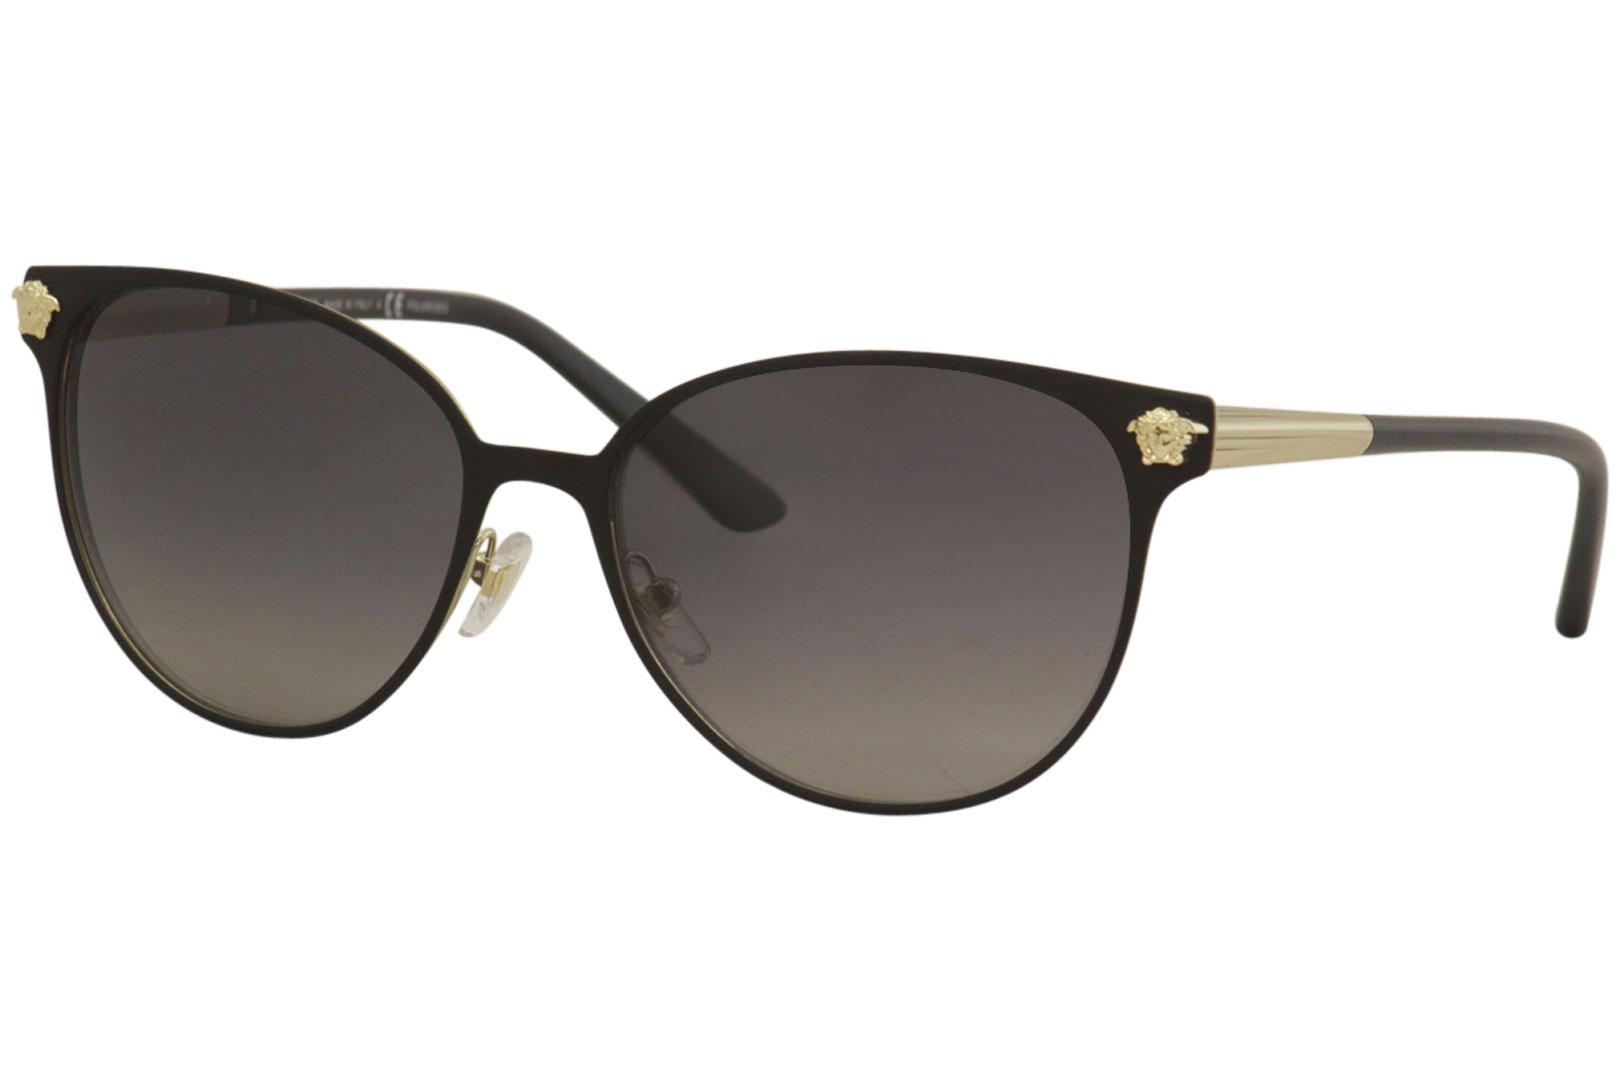 589c4afd0d3e Versace Women's VE2168 VE/2168 Fashion Sunglasses